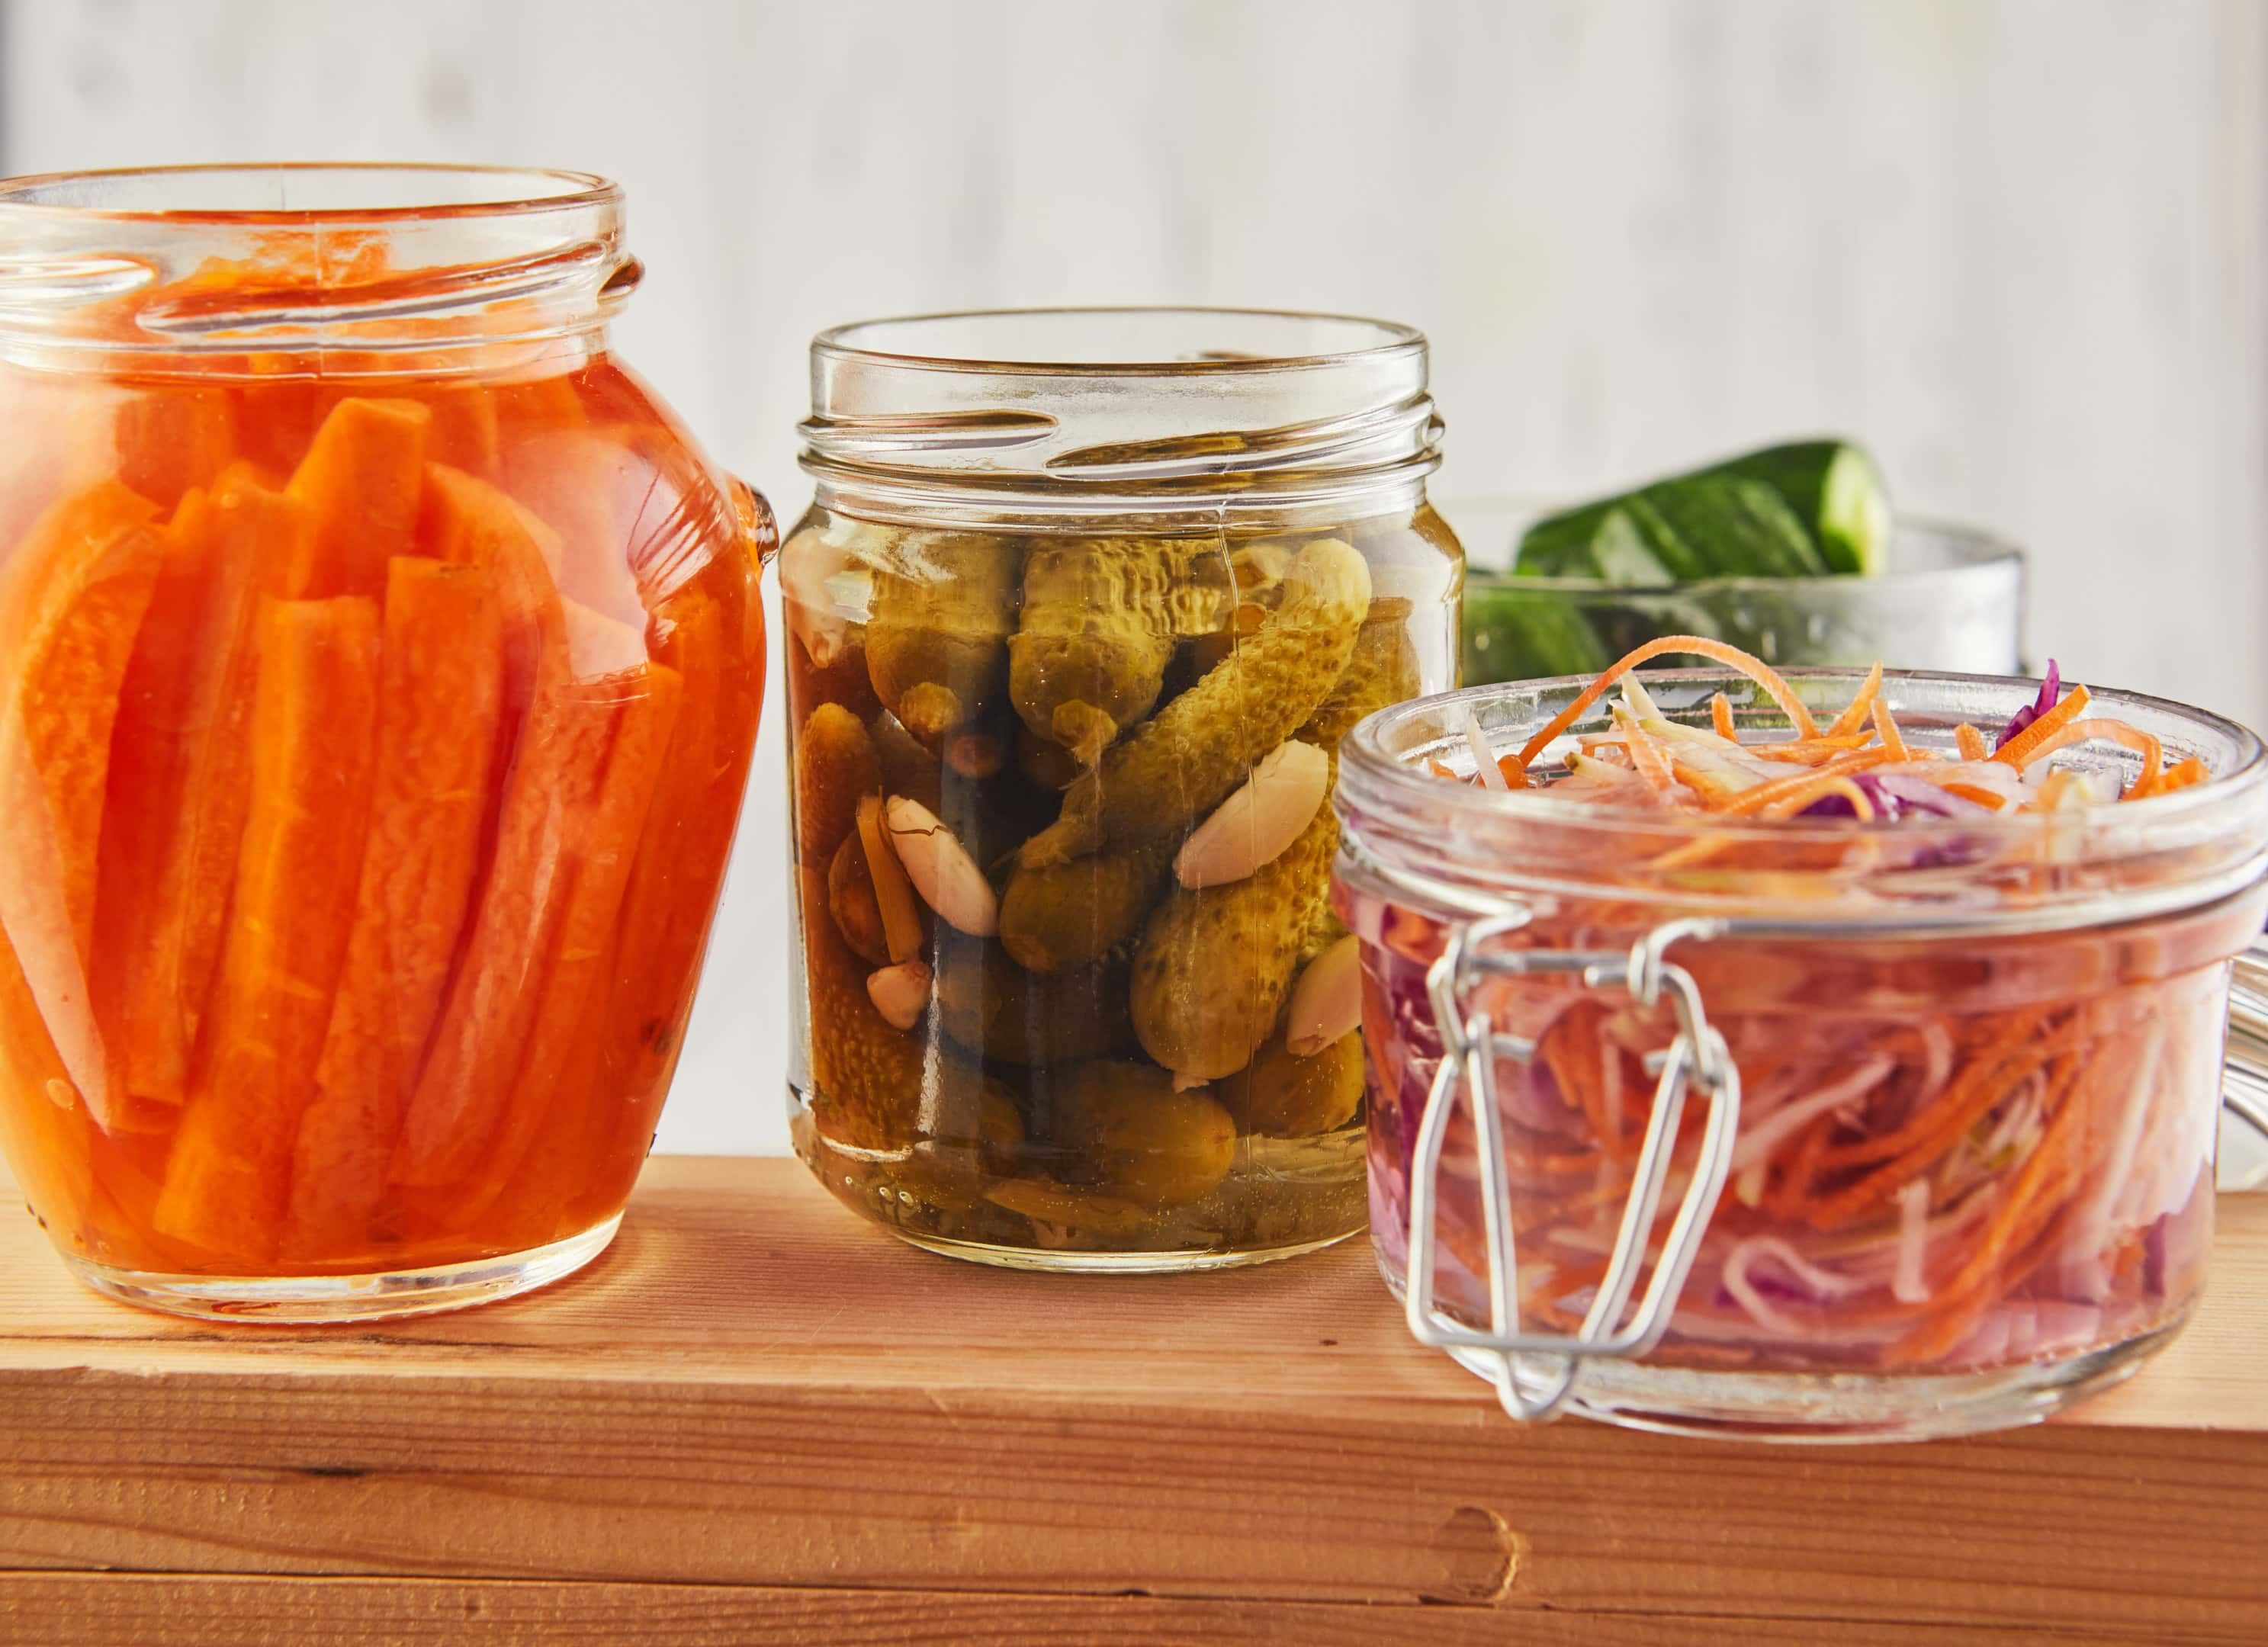 Fermented preserved foods on wooden table